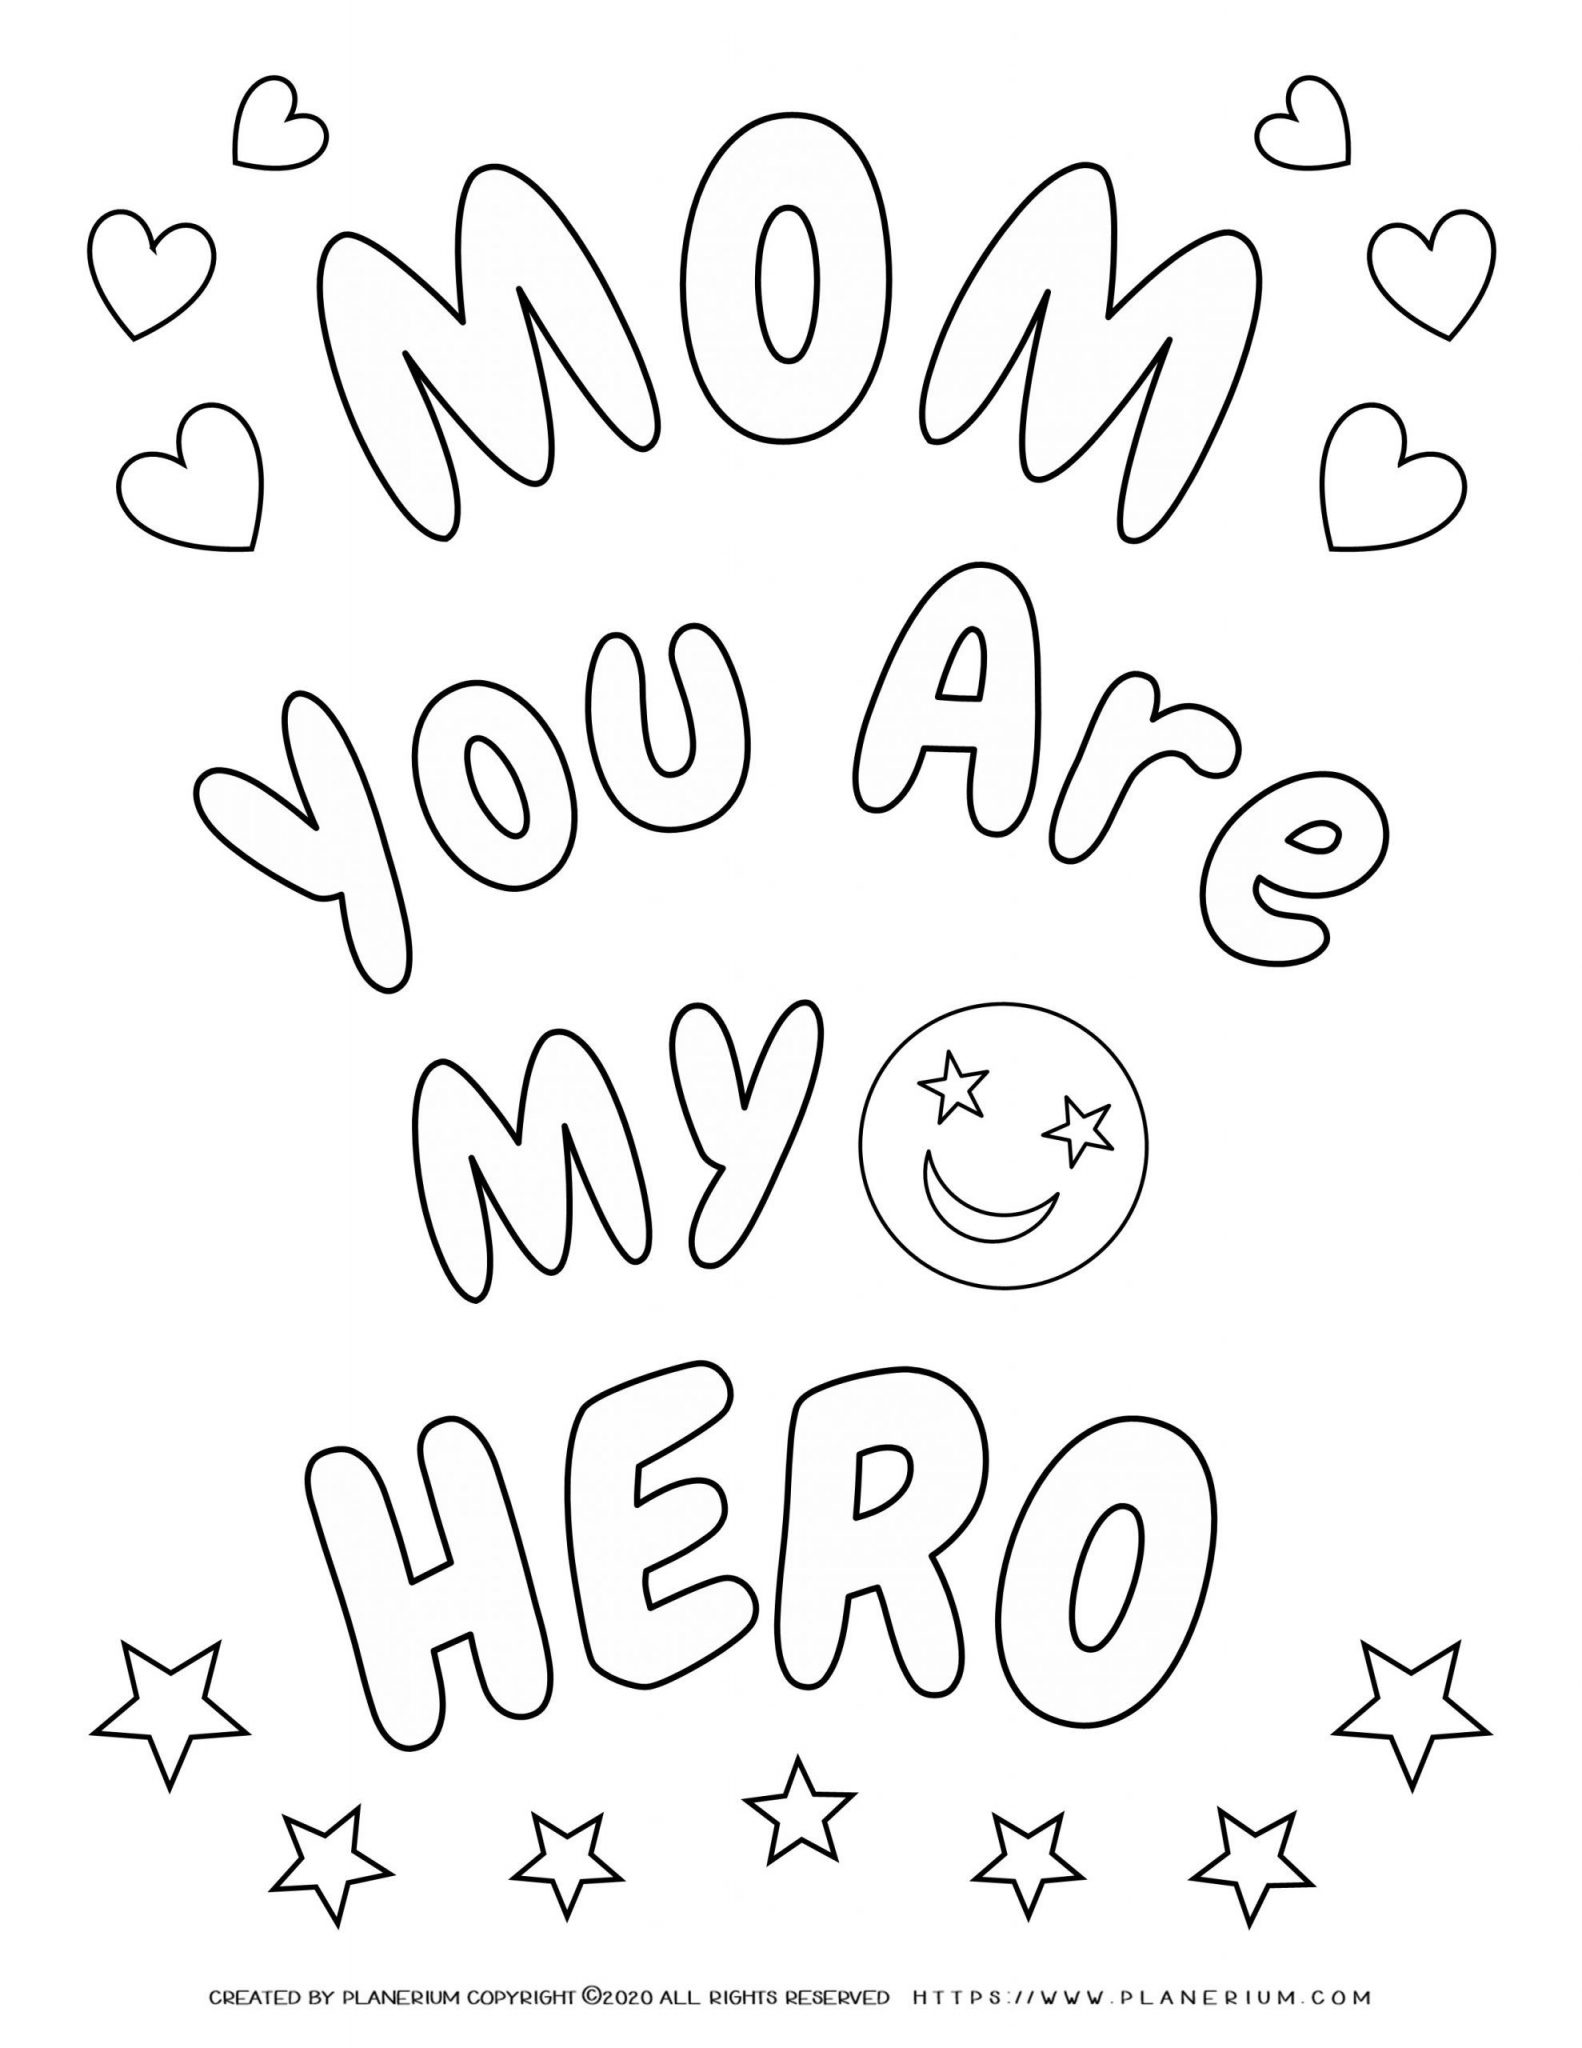 Mother's day - Coloring Page - Your'e my Hero